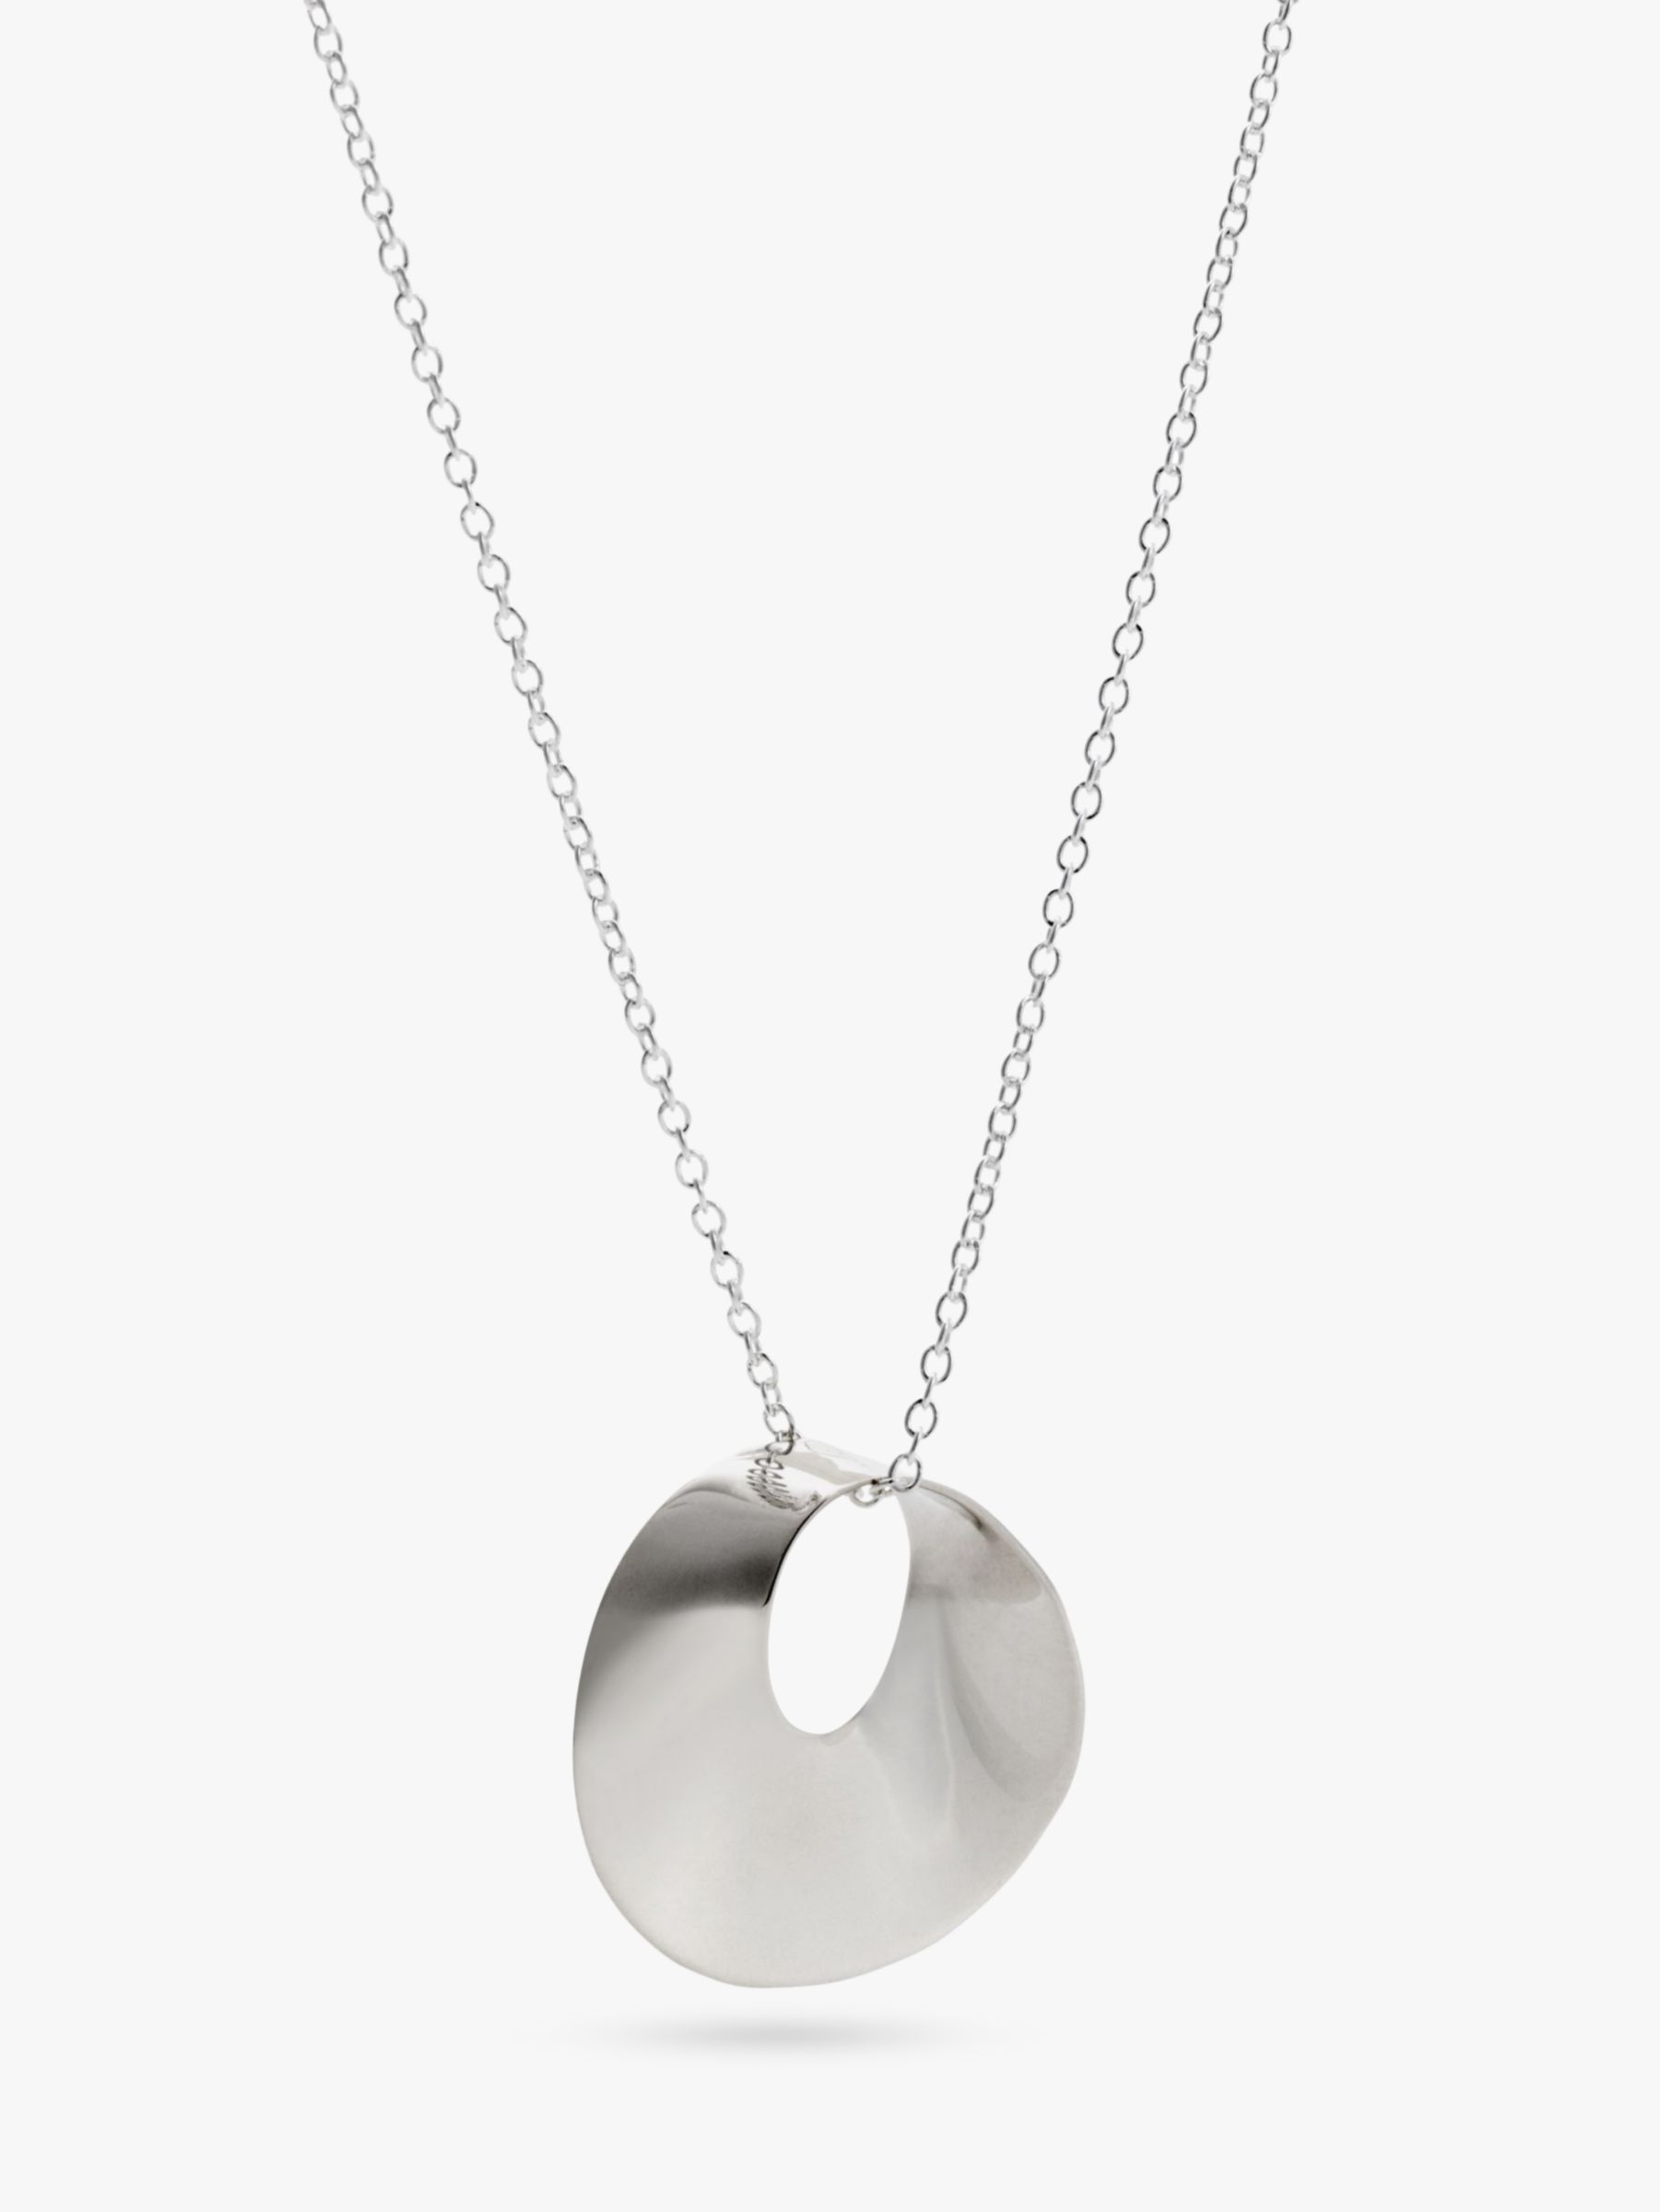 Andea Round Open Twist Silver Pendant Necklace